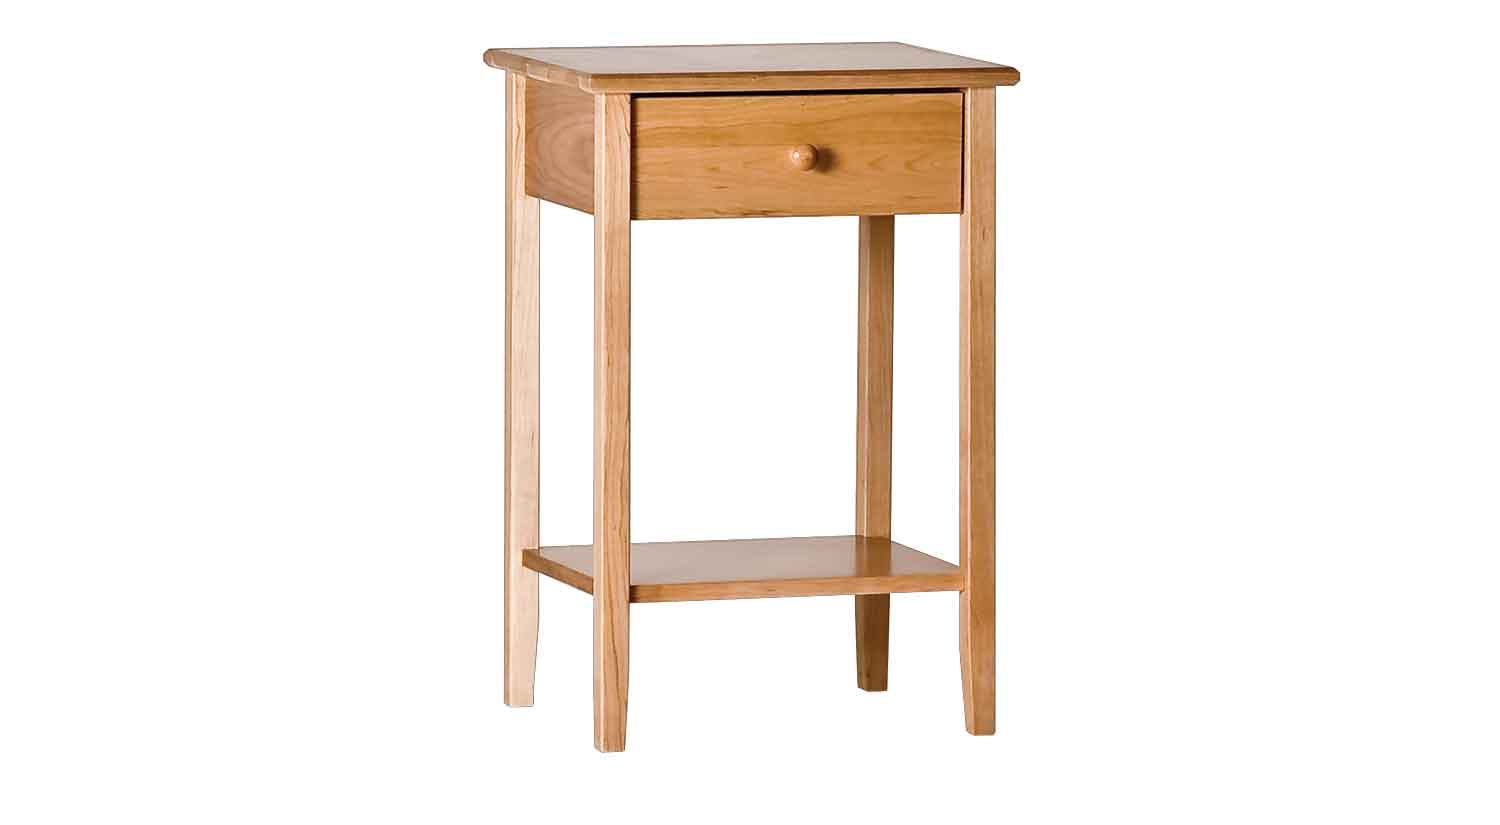 circle furniture shaker tall side table accent tables plans trapezoid resin nic farmhouse dining room mirrored nightstand target acrylic coffee decorative accents ideas cherry